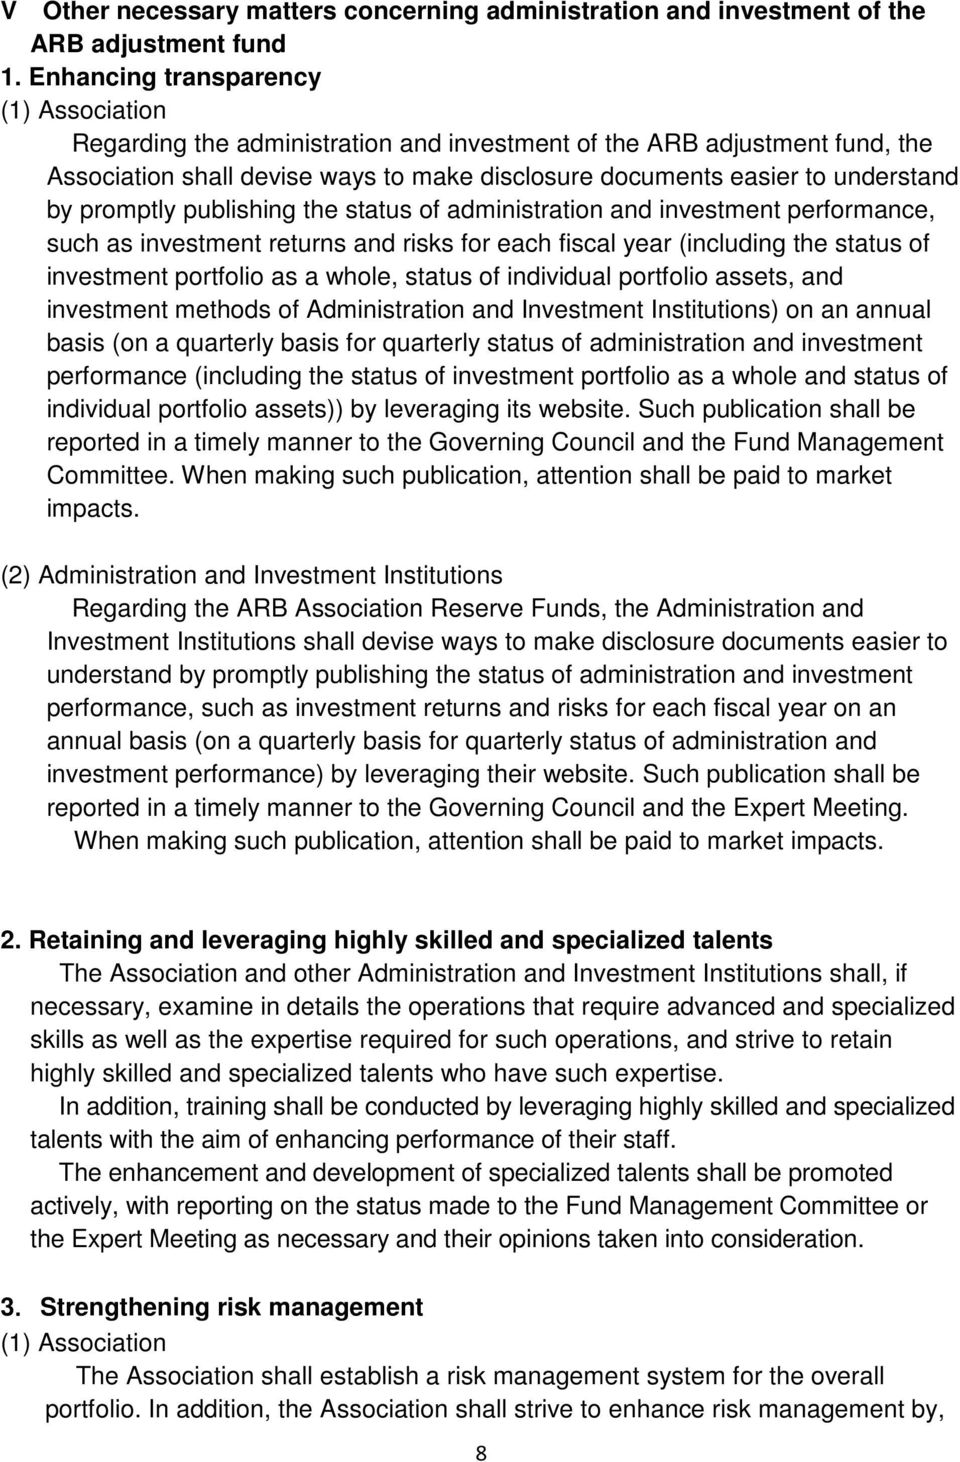 promptly publishing the status of administration and investment performance, such as investment returns and risks for each fiscal year (including the status of investment portfolio as a whole, status